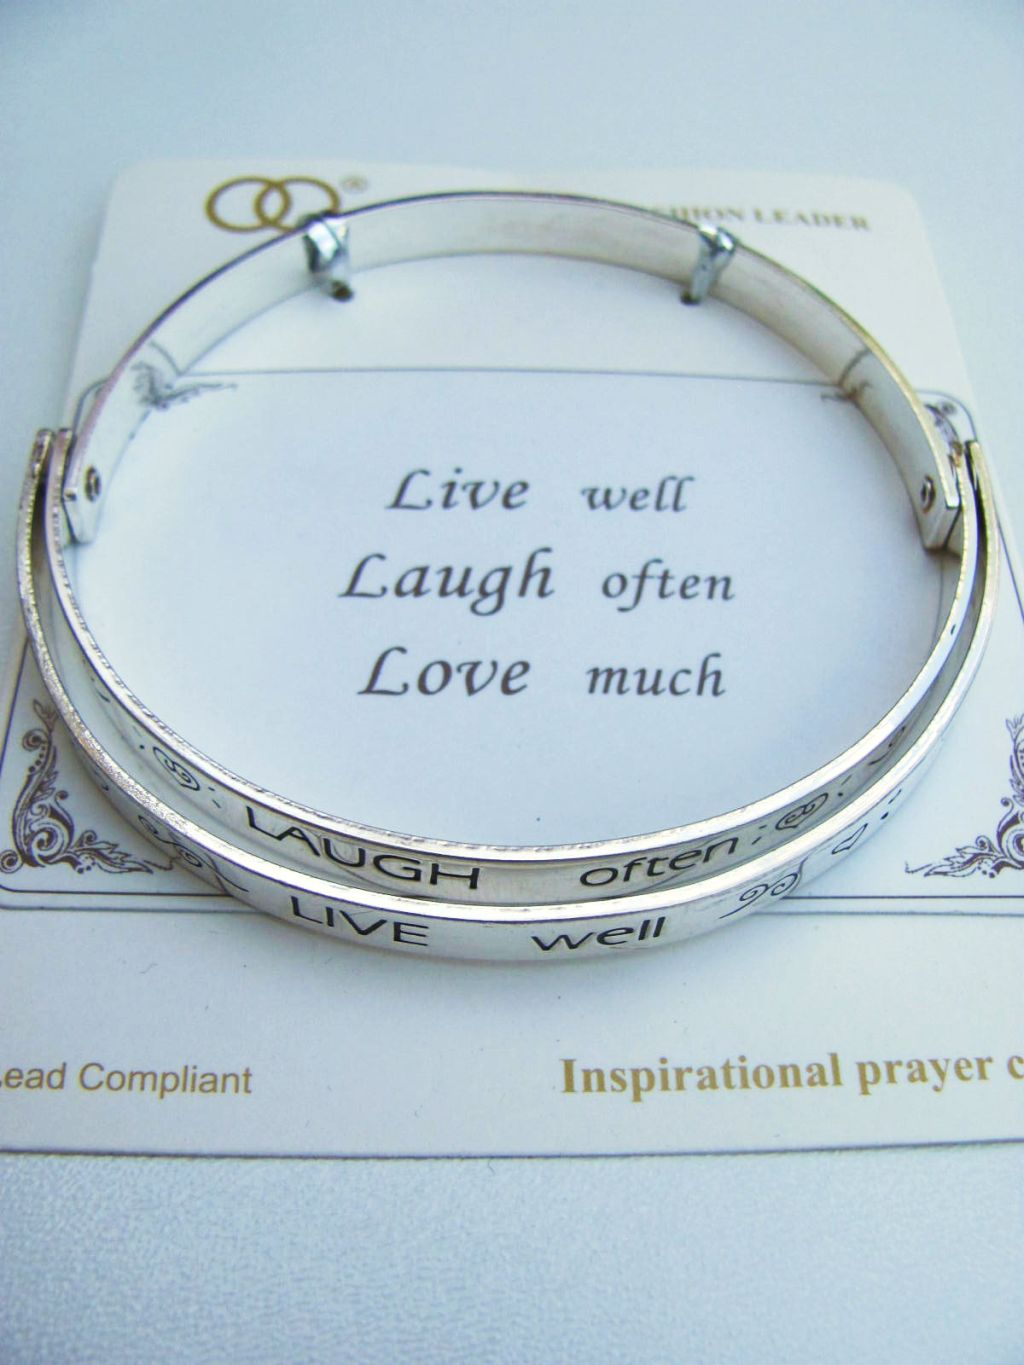 Live Laugh Love Inspirational Message Bangle Bracelet, Contemporary Style